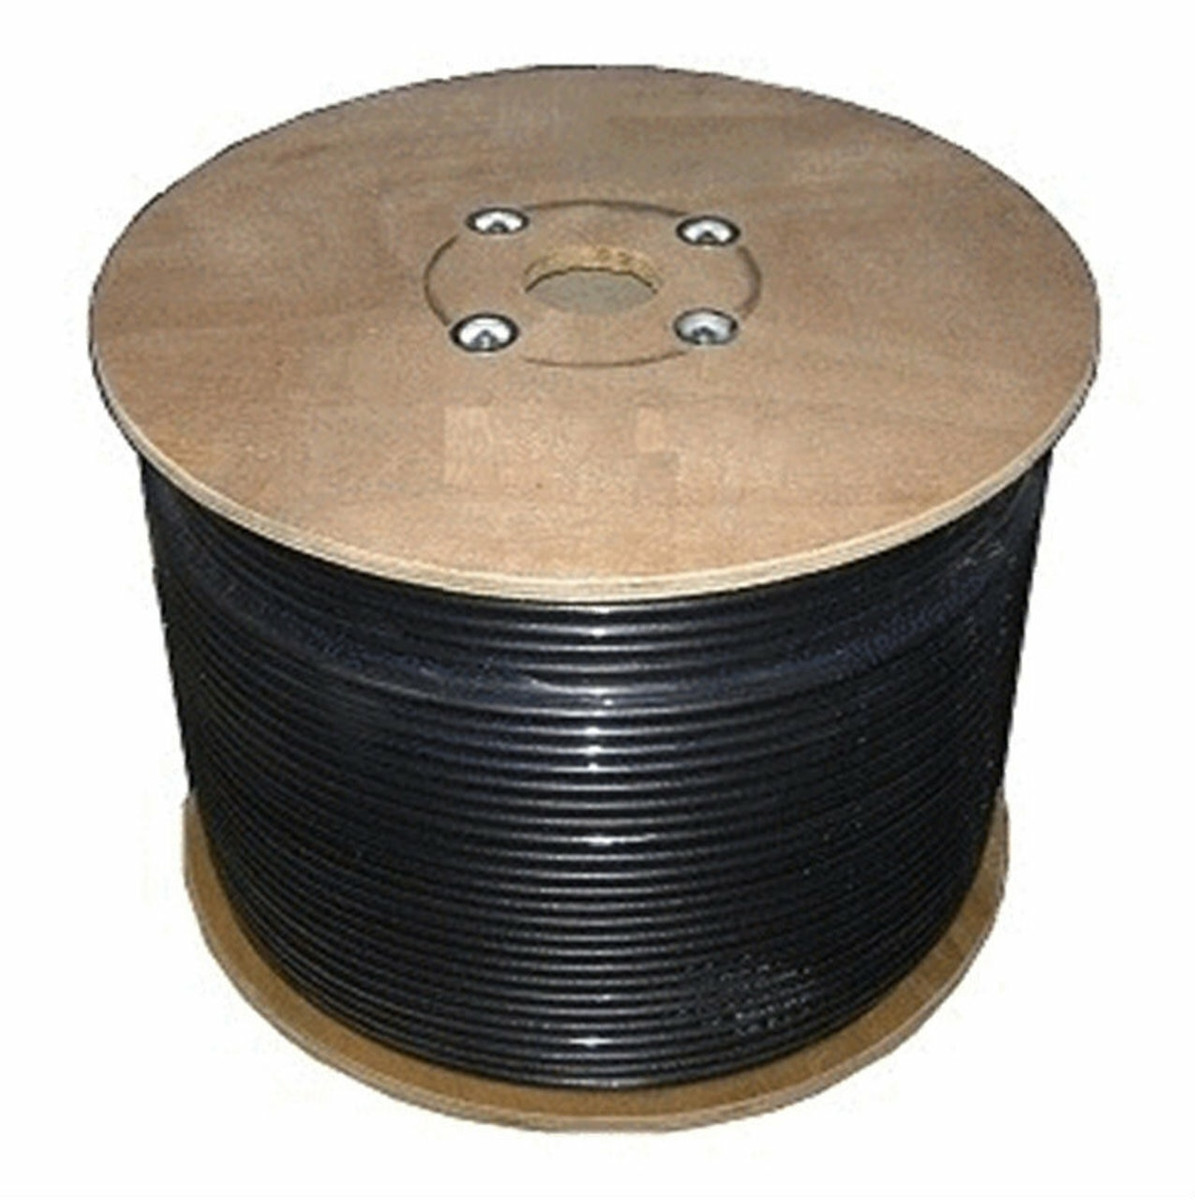 Bolton Technical Bolton600 Ultra Low-Loss Coax Cable   Priced Per Foot